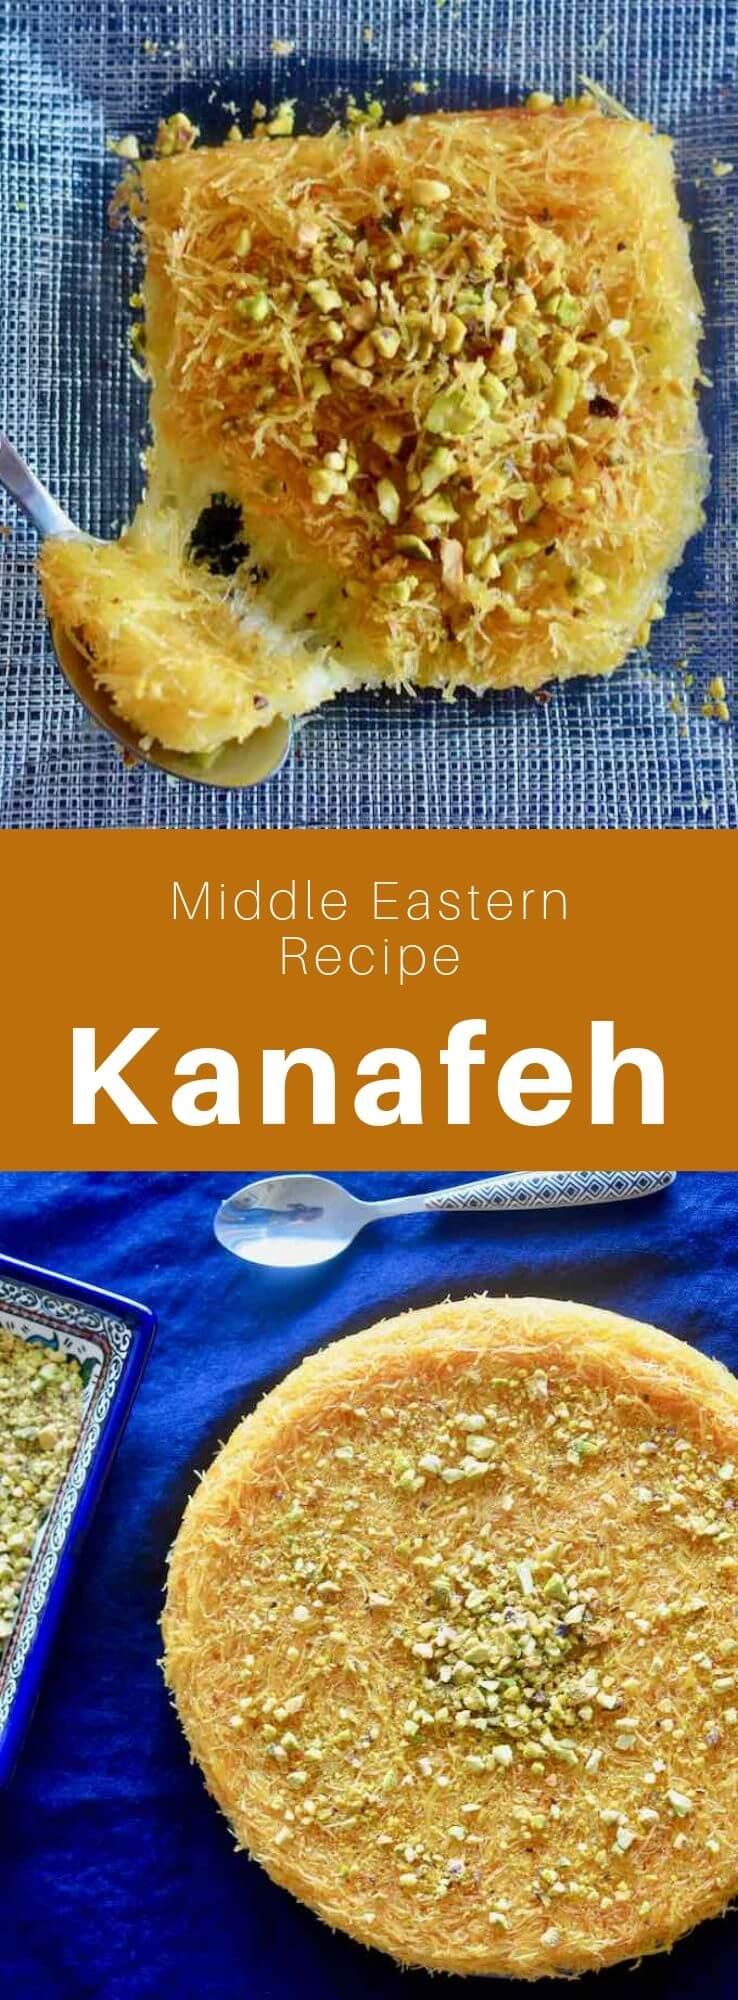 Kanafeh is a typical Middle Eastern pastry, soaked in rose water syrup, made with kadaif (angel hair), akawi cheese, butter and pistachios or walnuts. #MiddleEasternCuisine #MiddleEasternRecipe #MiddleEasternFood #ArabCuisine #ArabRecipe #ArabFood #SyrianCuisine #SyrianFood #SyrianRecipe #SyrianDessert #WorldCuisine #196flavors